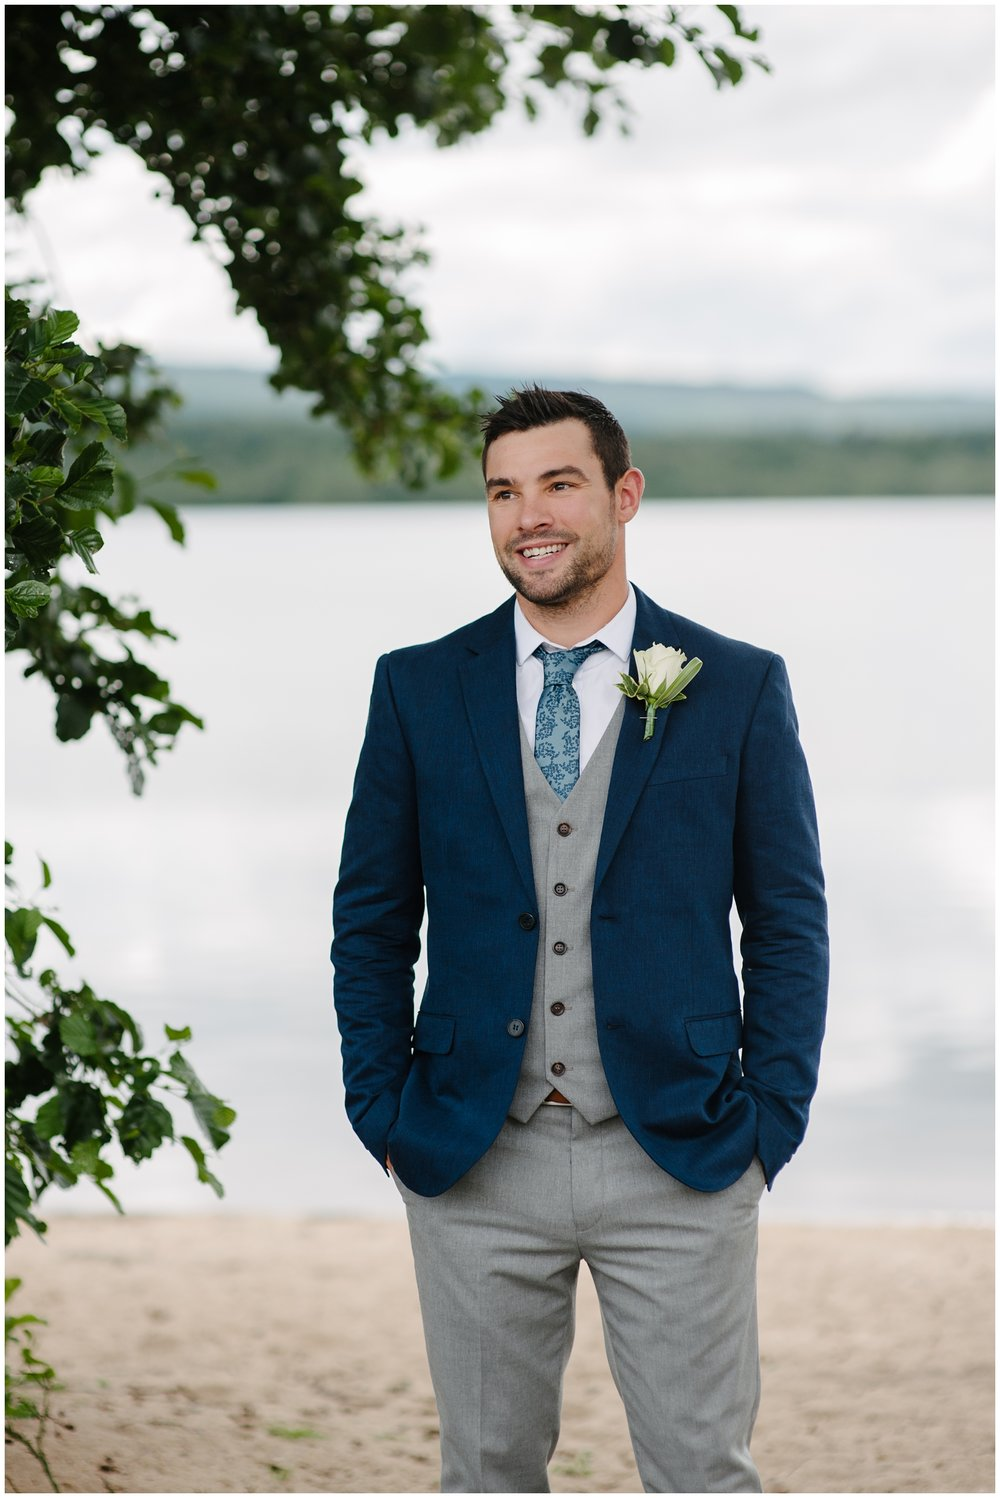 Lynsey_Andy_Rossharbour_Fermanagh_wedding_jude_browne_photography_0010.jpg